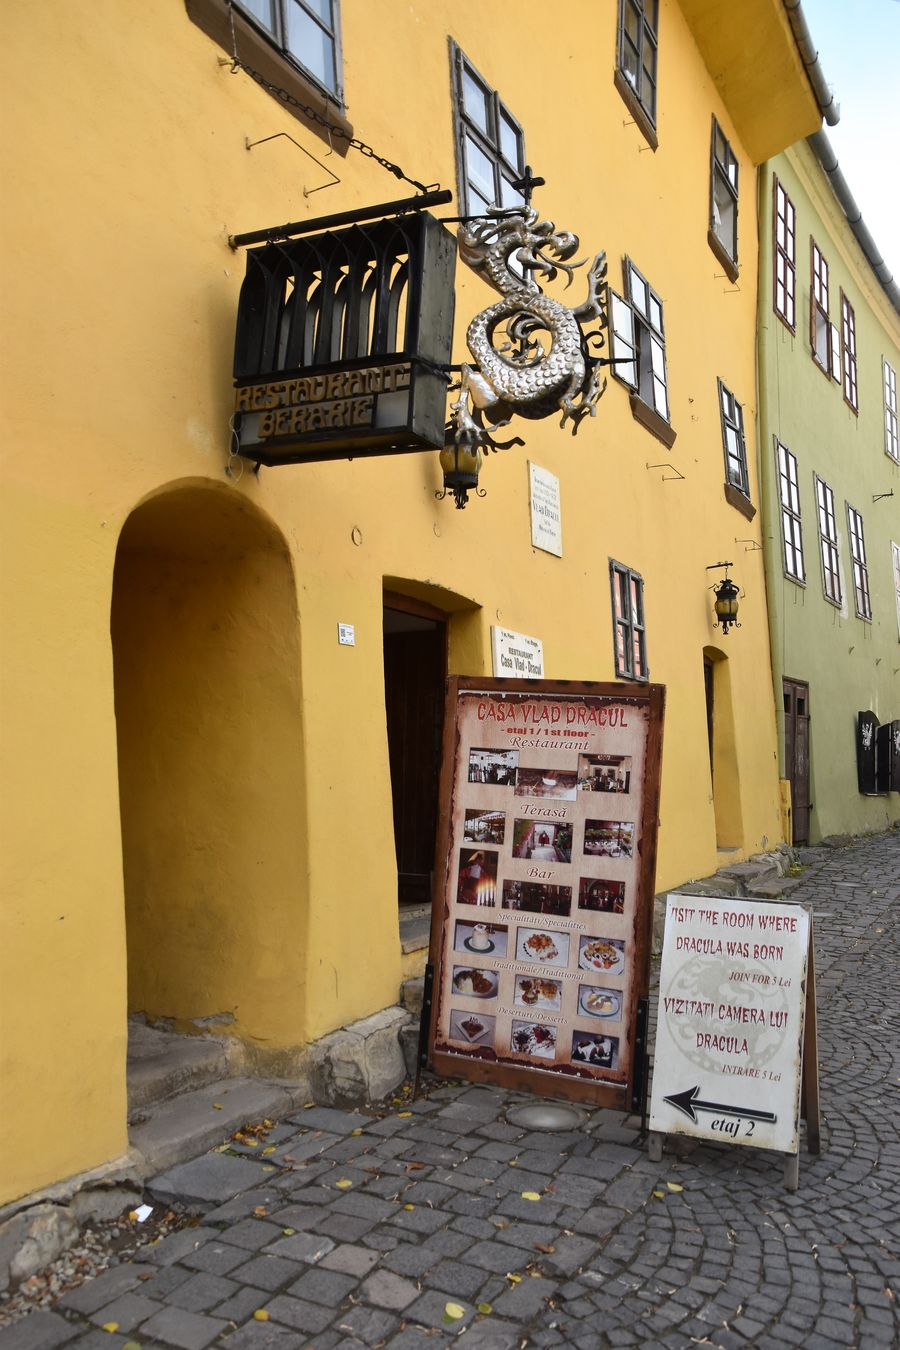 Dracula's birthplace in Sighisoara Romania